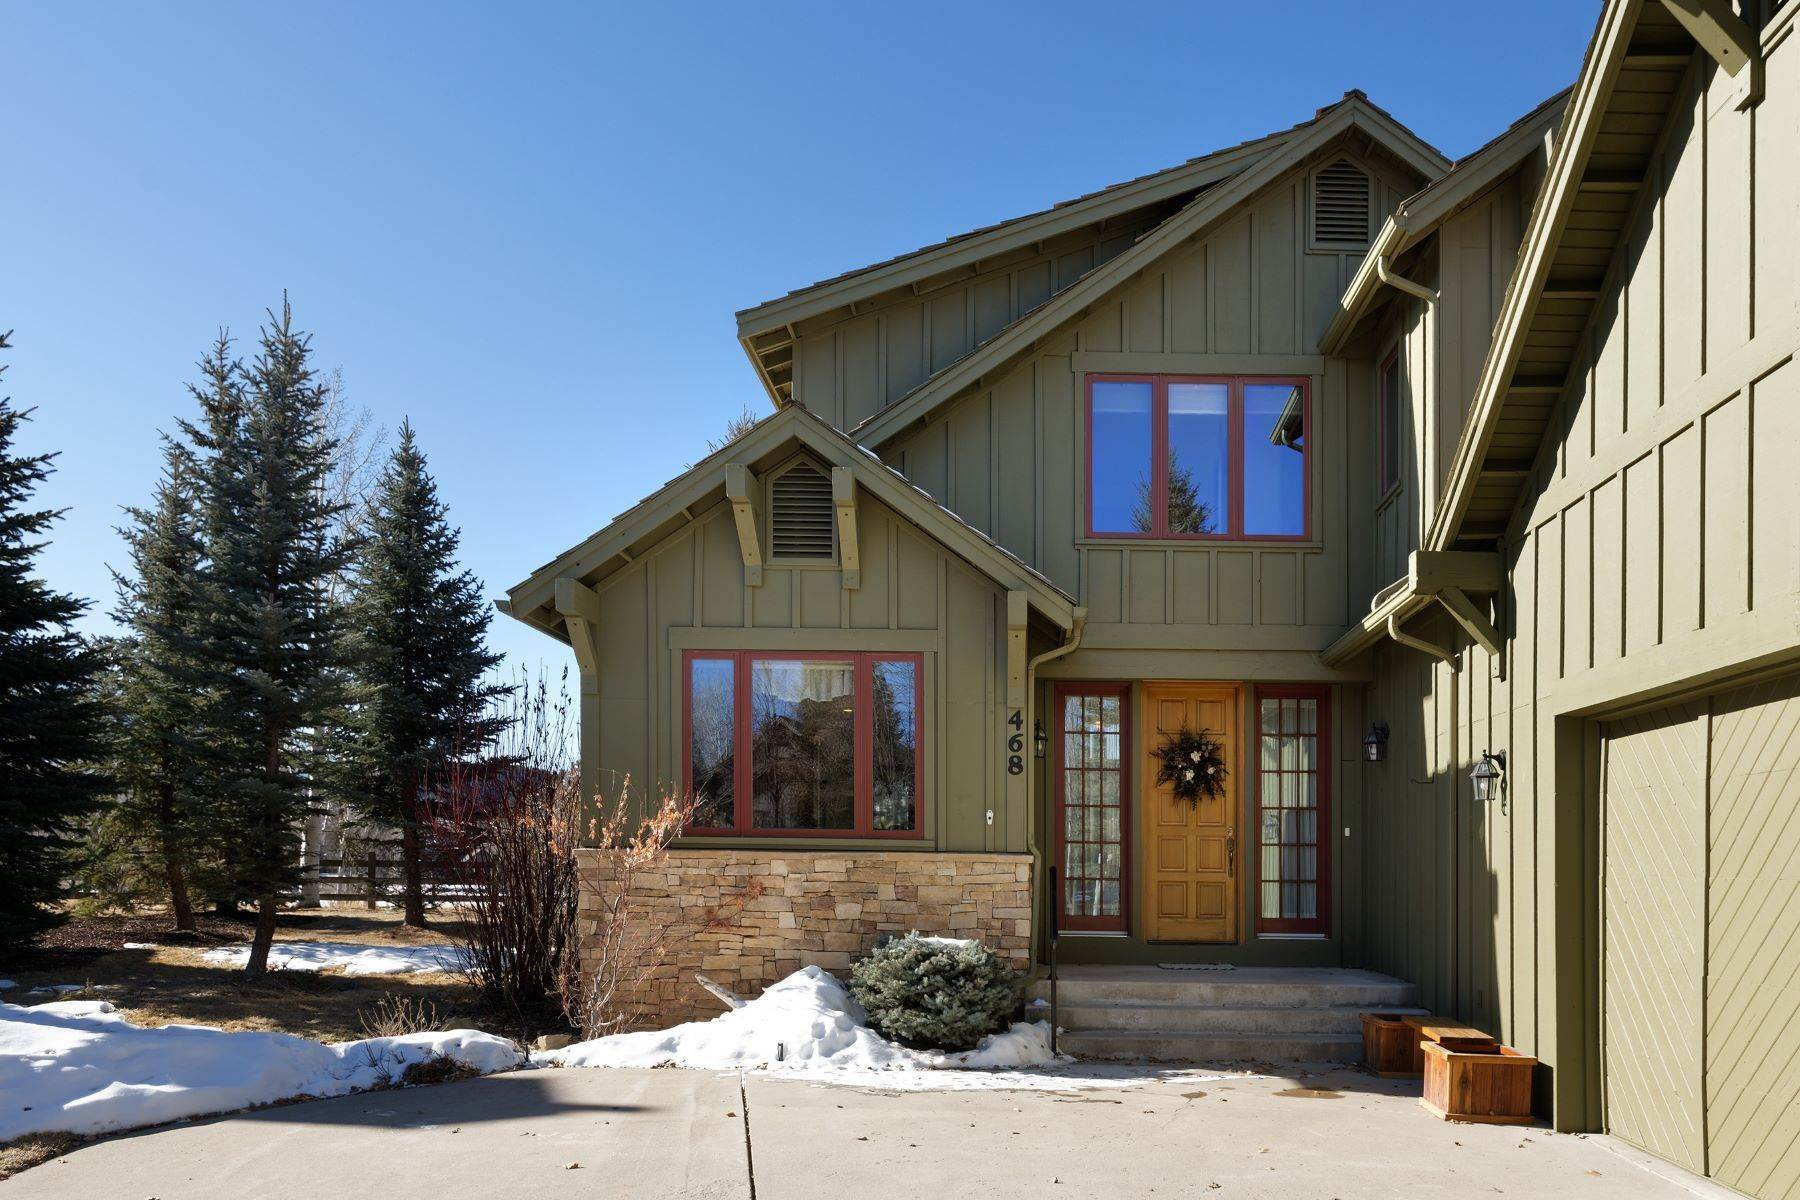 Single Family Homes for Sale at STUNNING VIEWS OF MT. SOPRIS 468 Settlement Lane Carbondale, Colorado 81601 United States